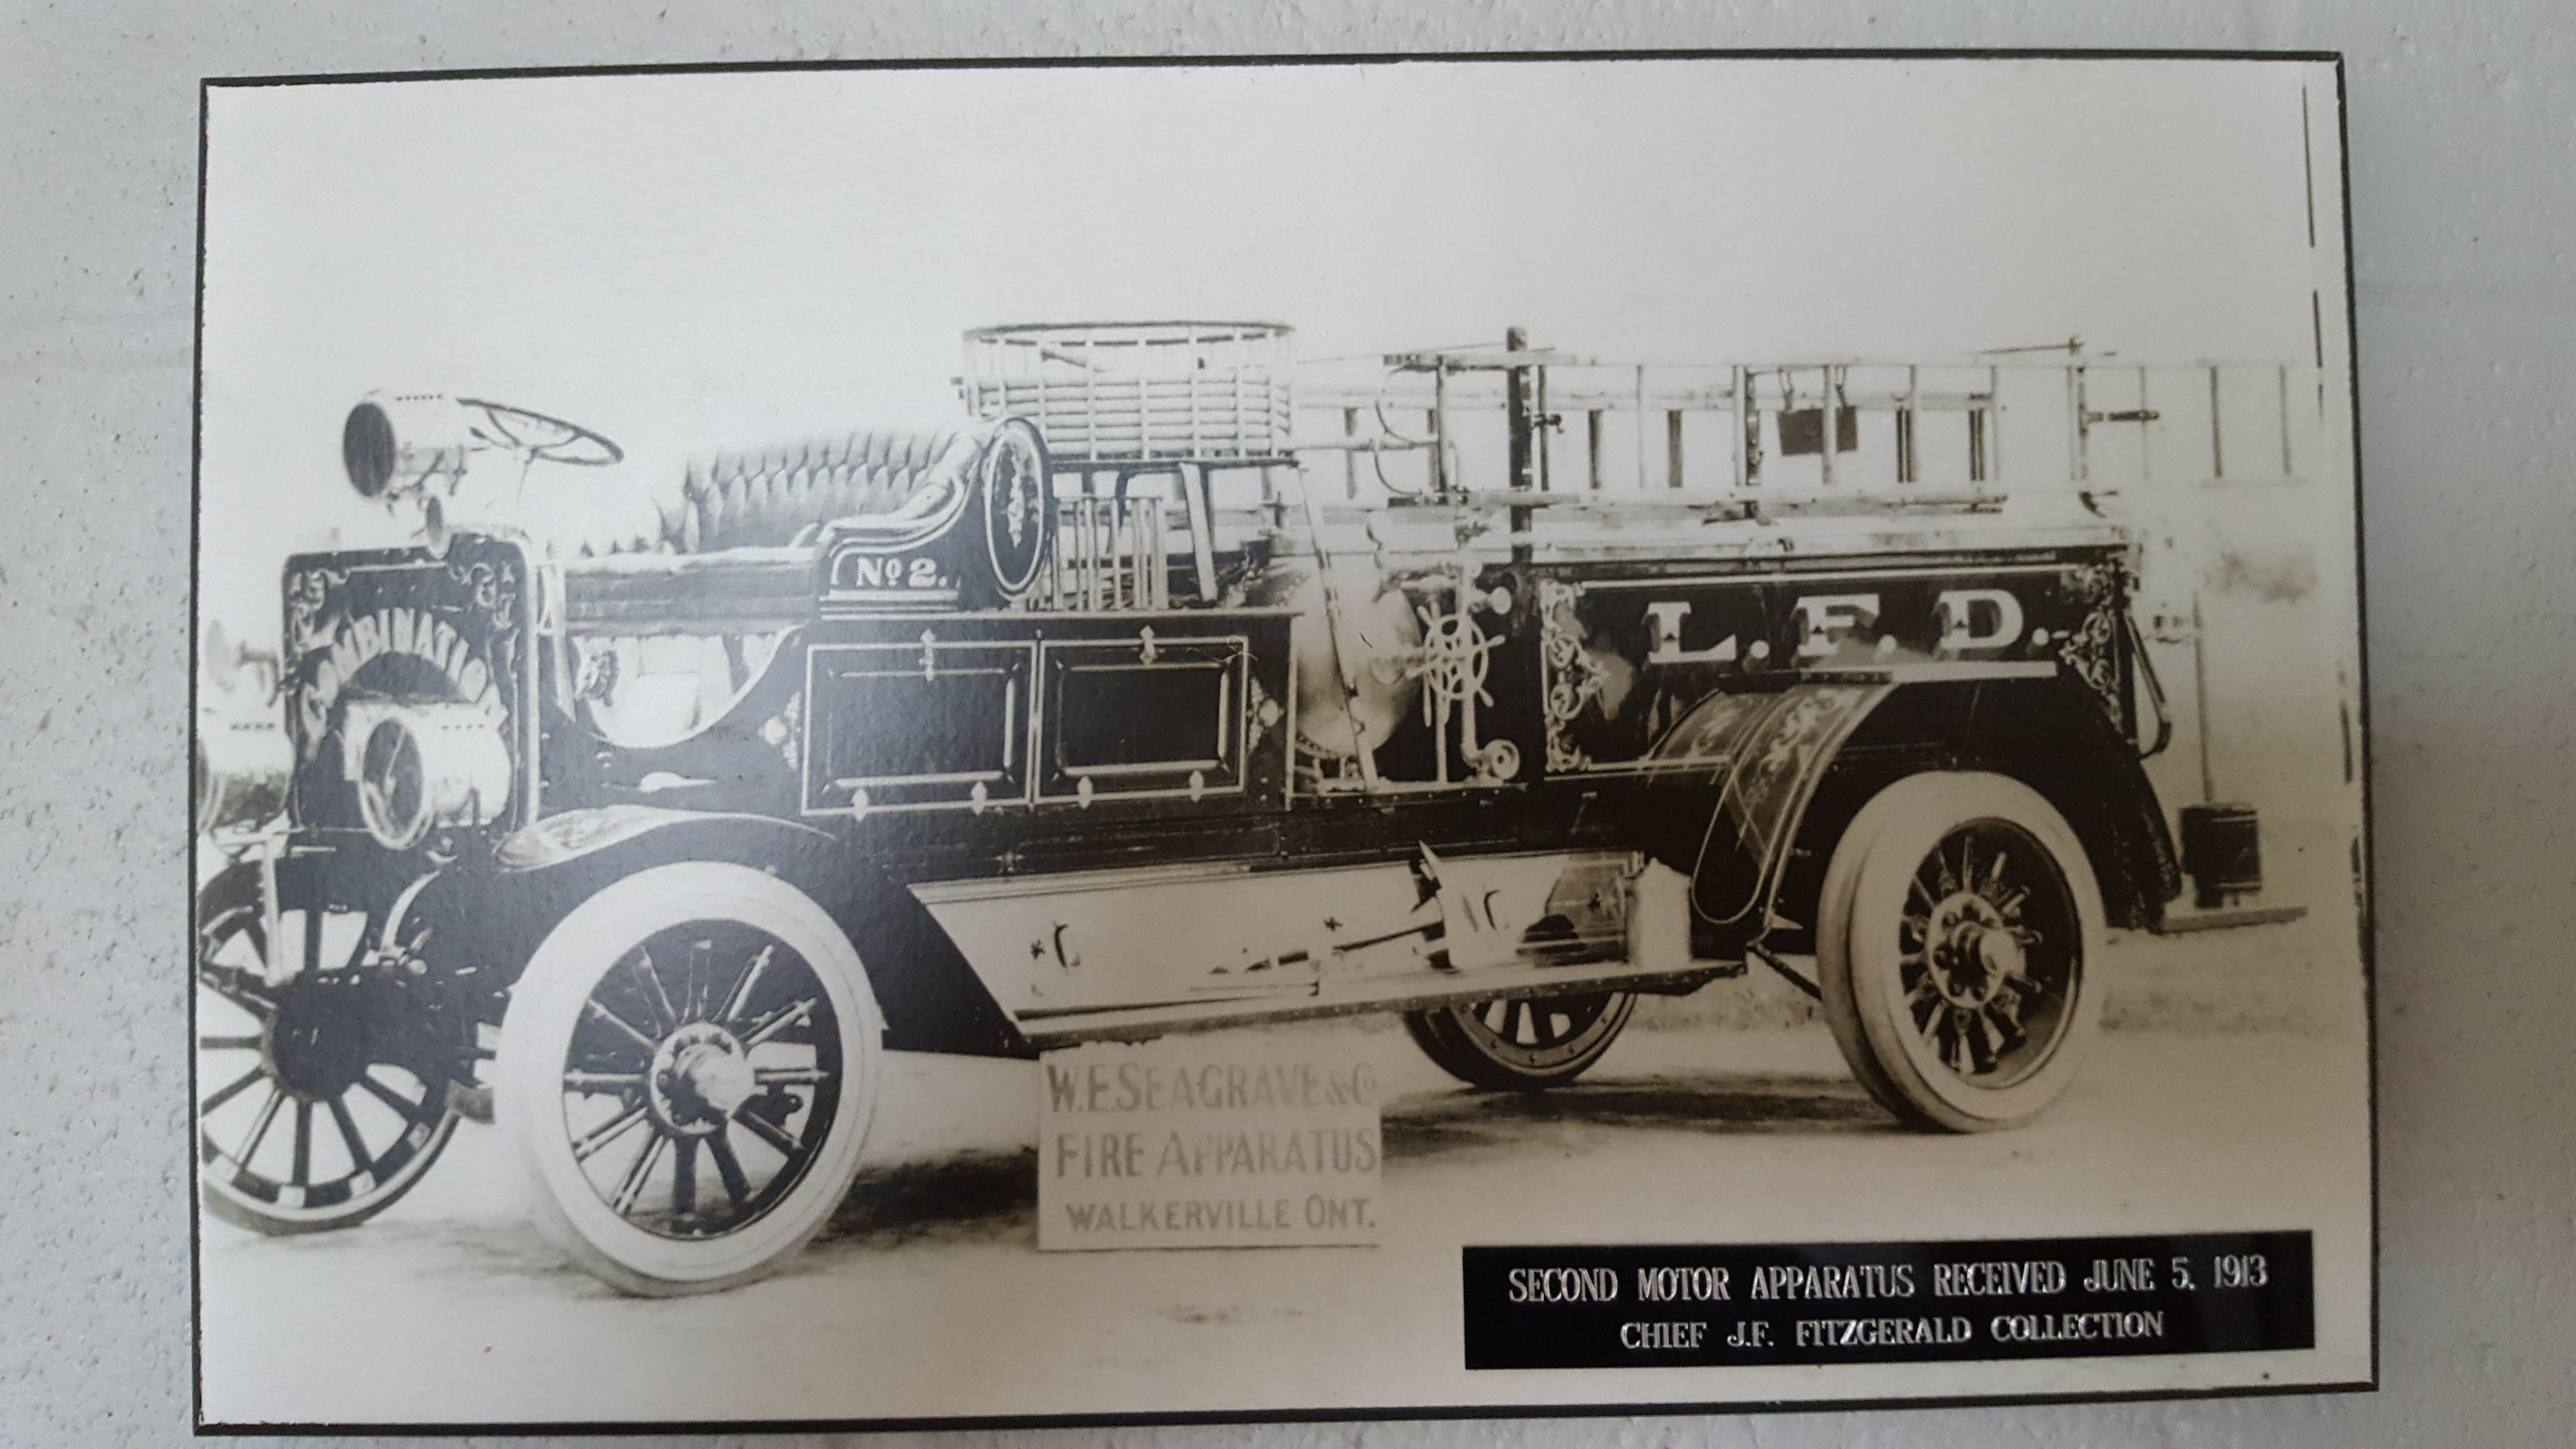 Second motor apparatus received June 5, 1913.